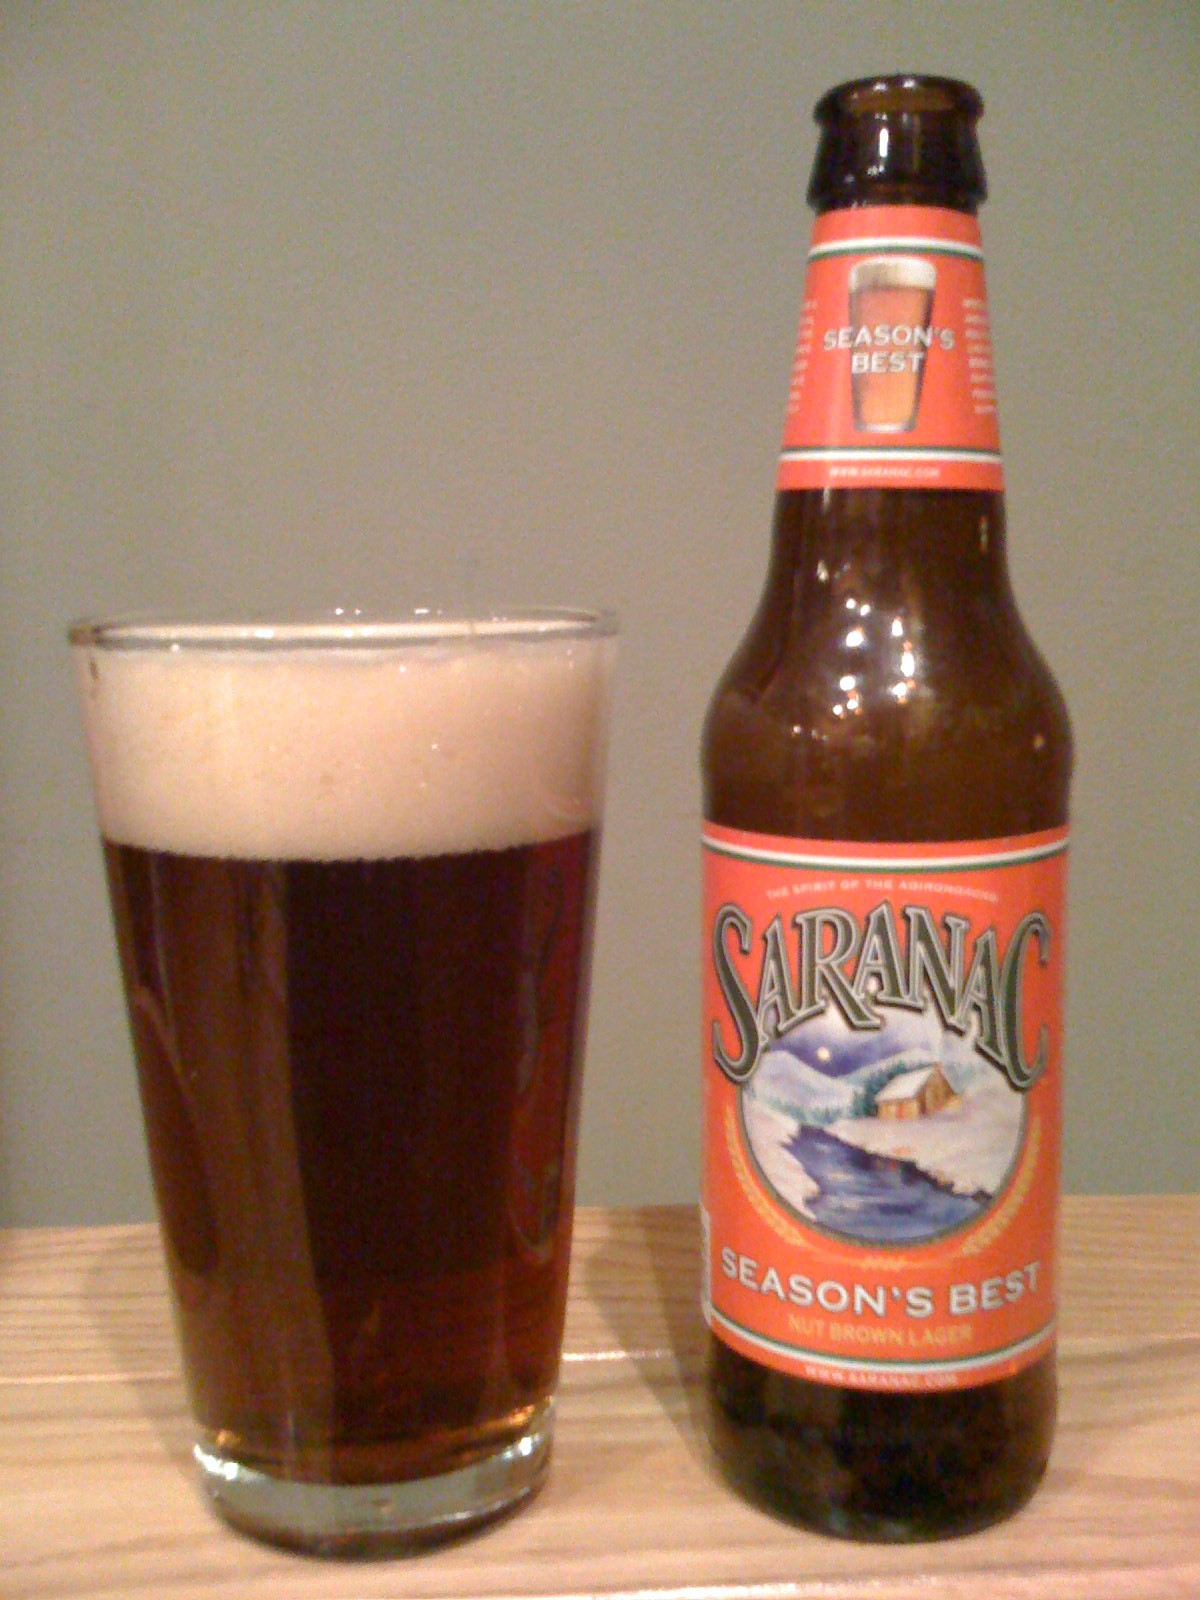 Saranac Seasons Best Nut Brown Lager